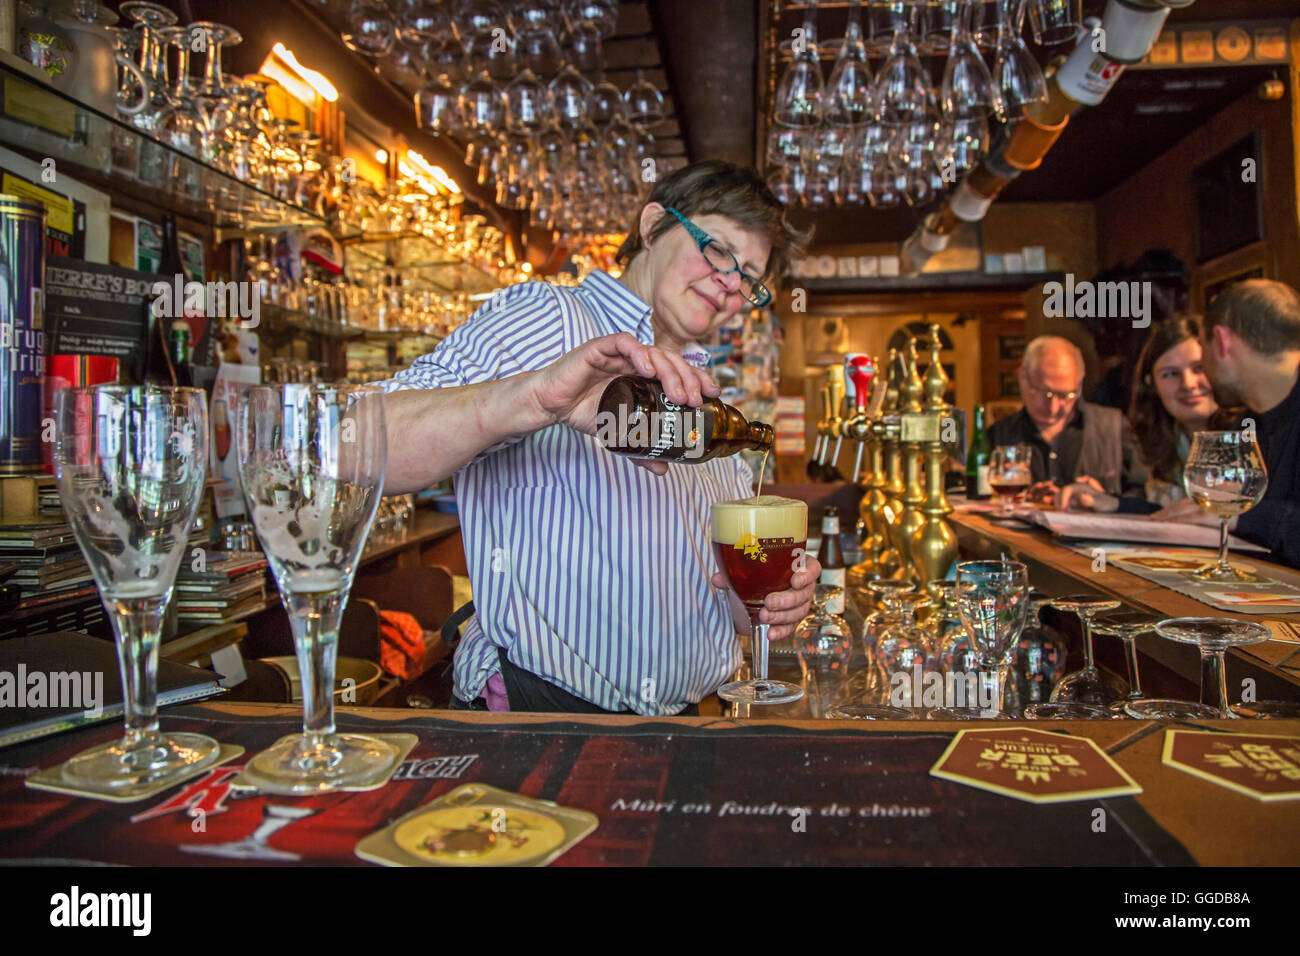 bartender-pouring-belgian-beer-in-glass-